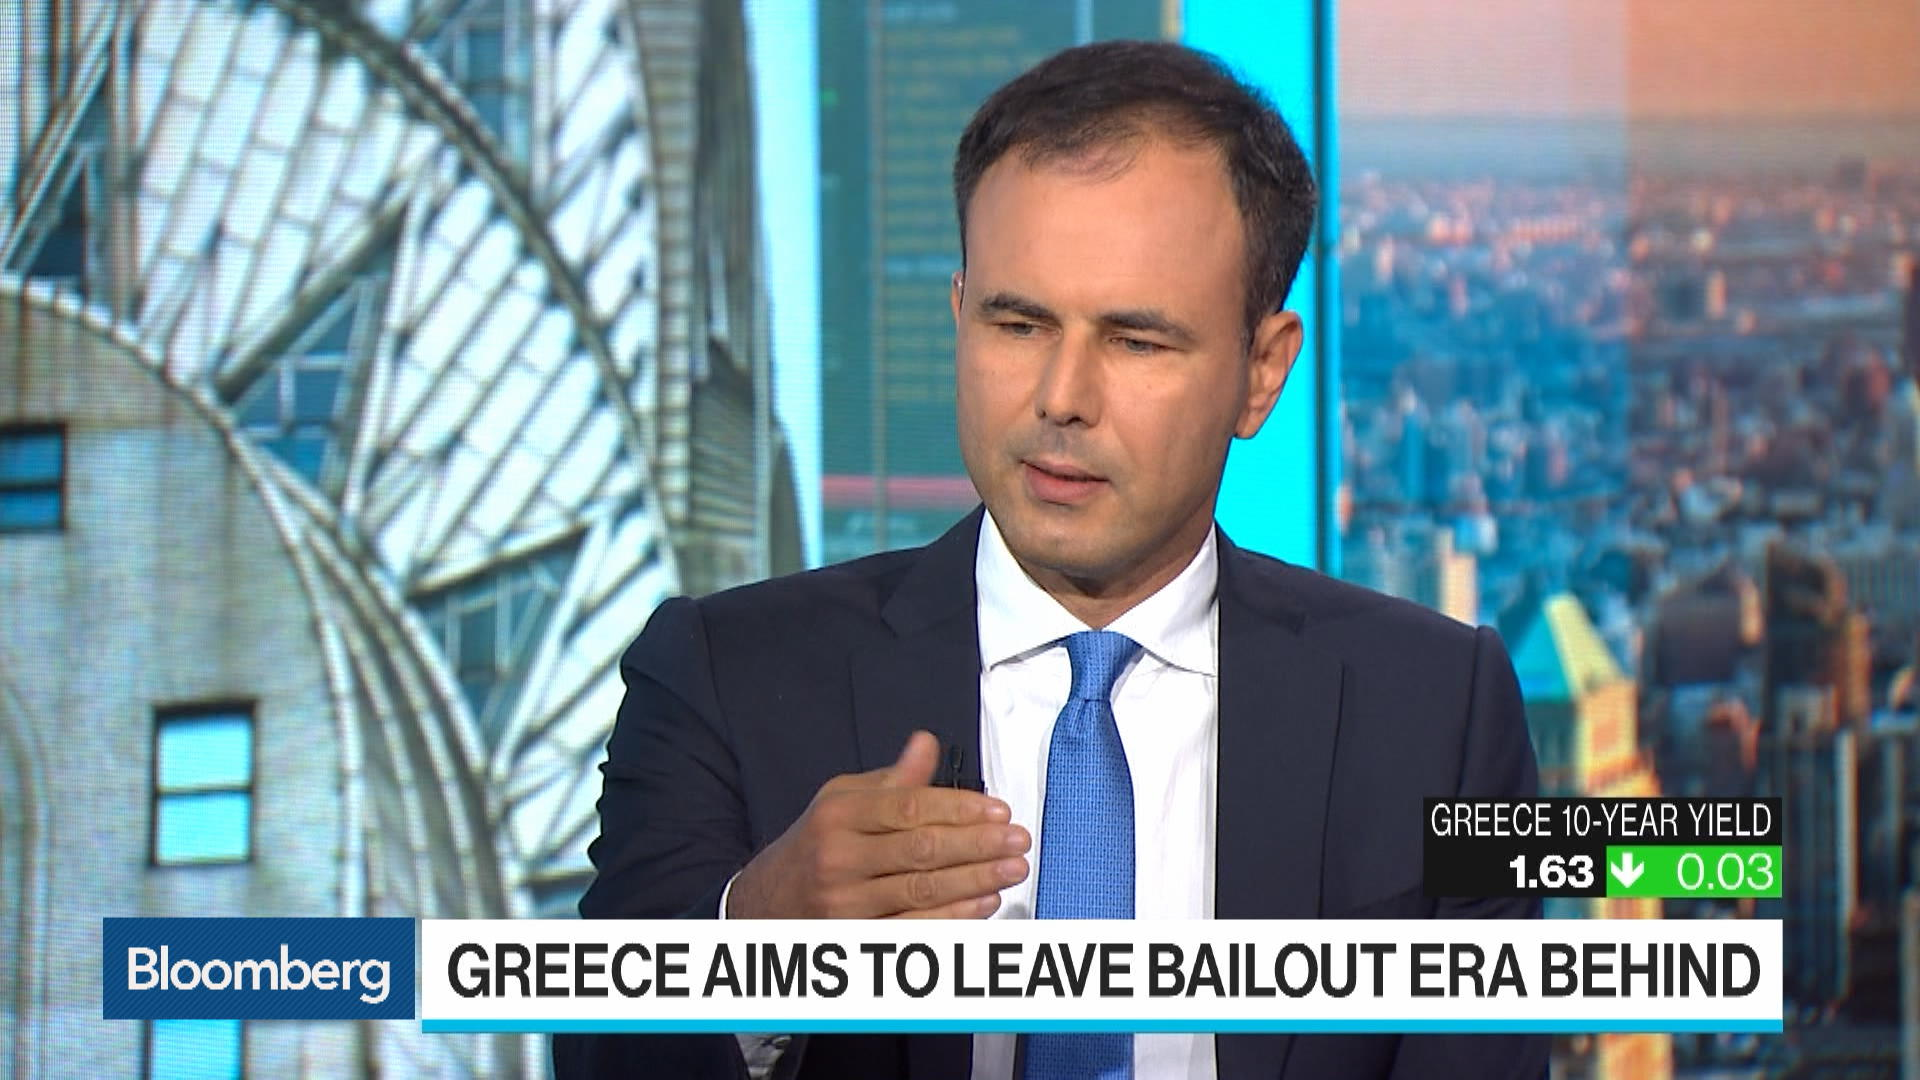 Greece Want to Move Forward With APS Scheme for Bad Loans, Says PM Mitsotakis's Adviser Alex Patelis